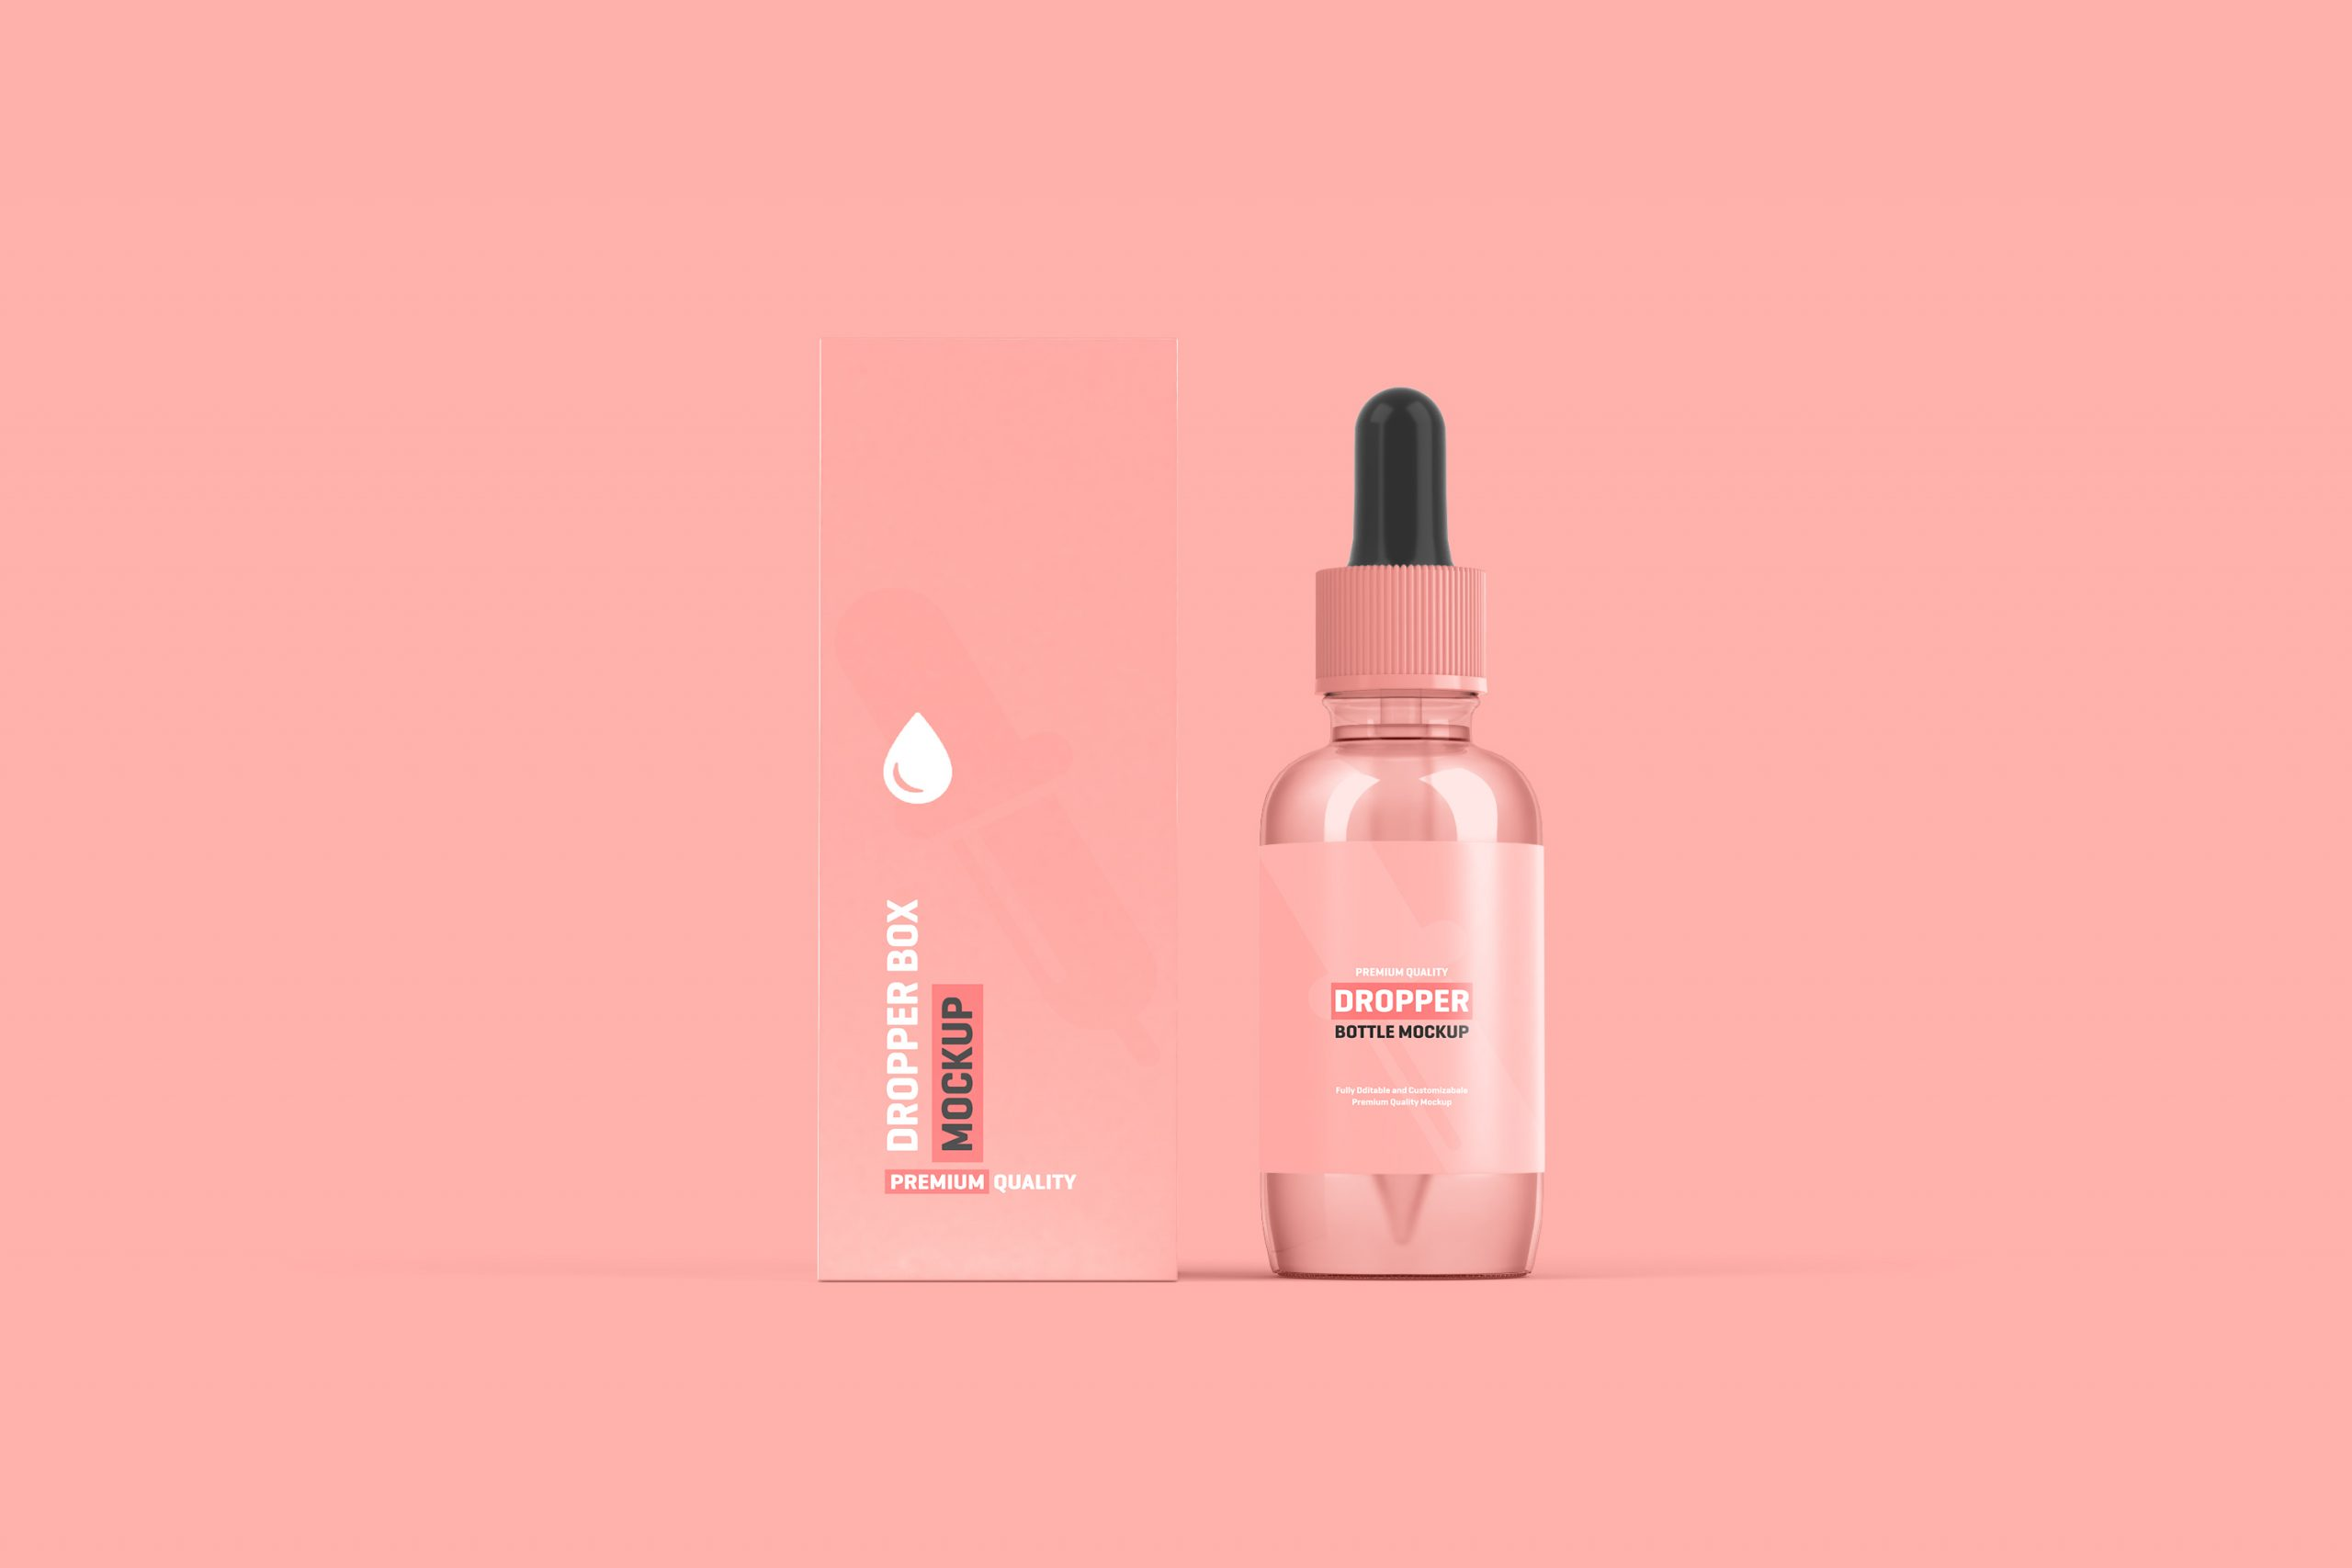 Free Dropper Bottle Packaging Mockup